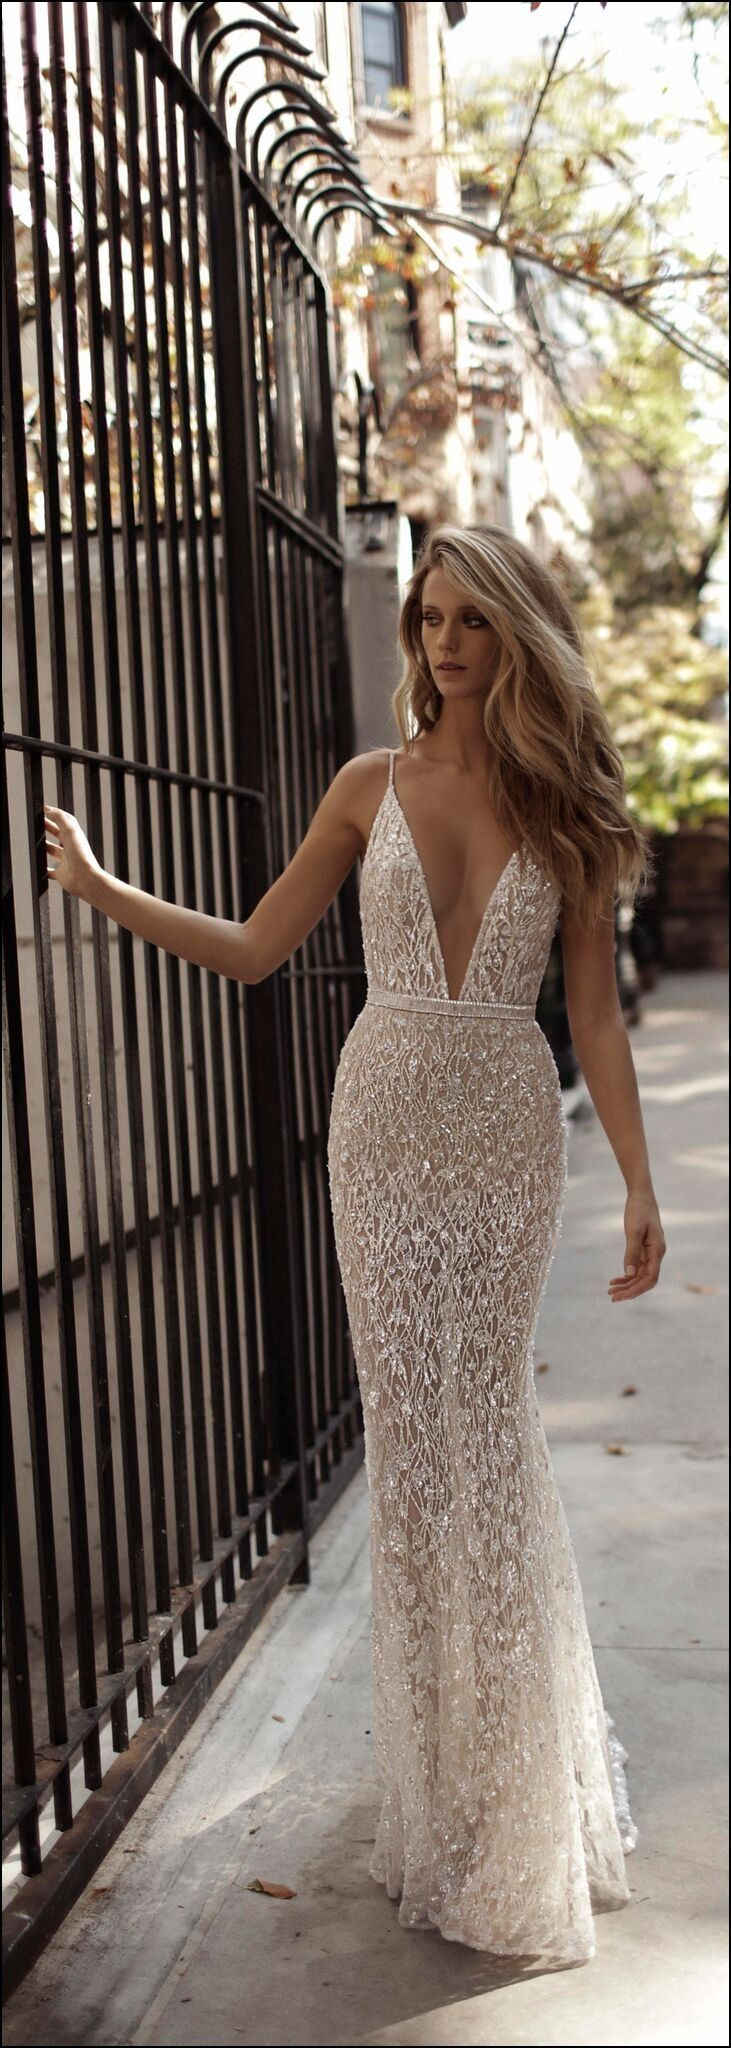 Dresses to Wear to evening Wedding Reception